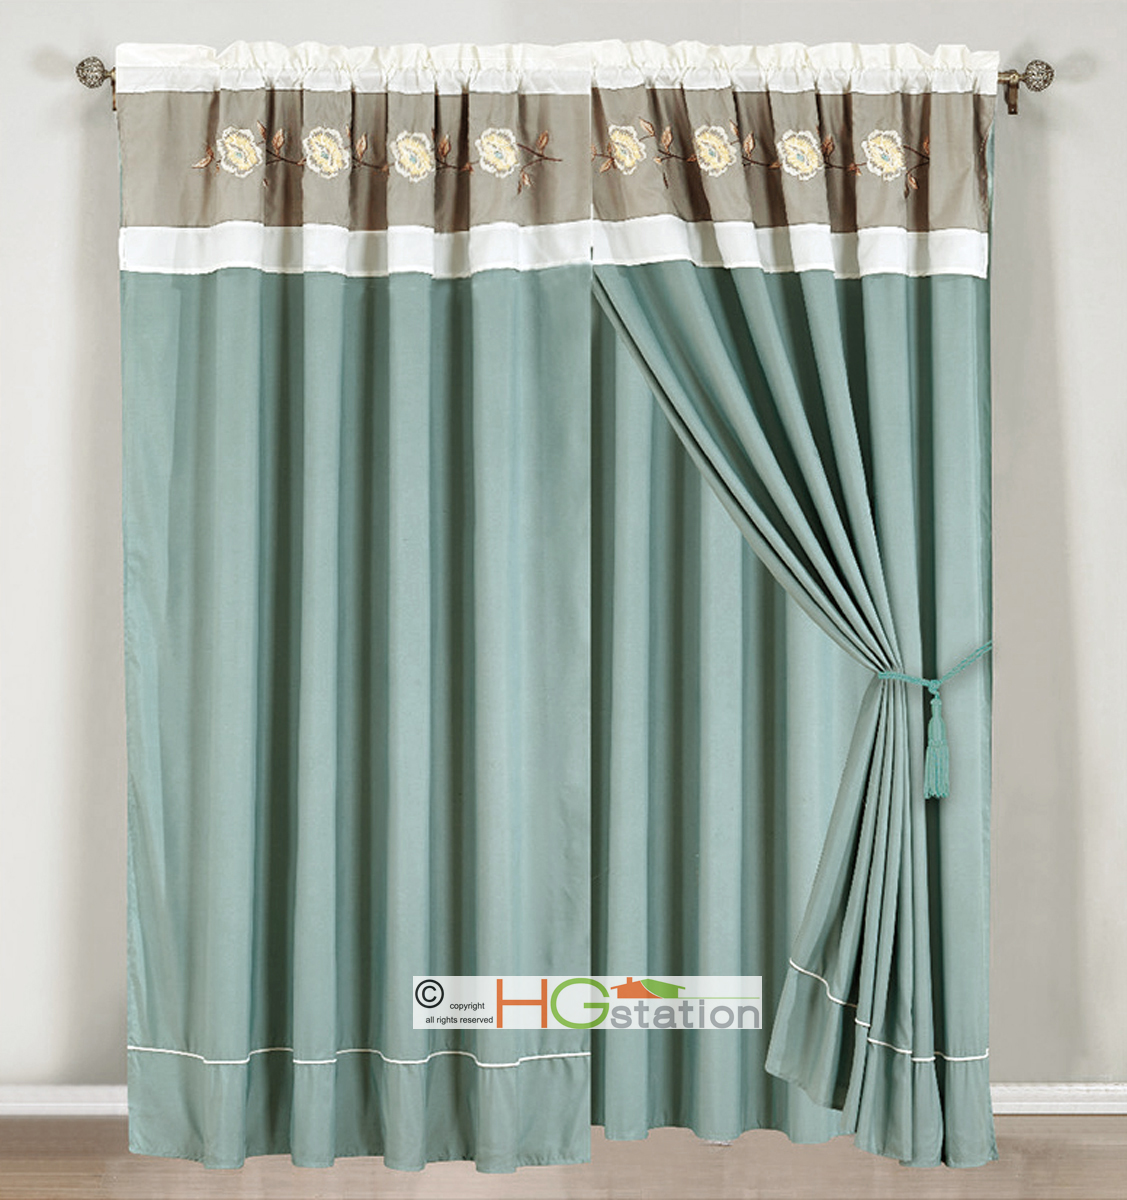 4 Pc Embroidery Pleated Floral Curtain Set Sea Green Blue Silver White Valanc